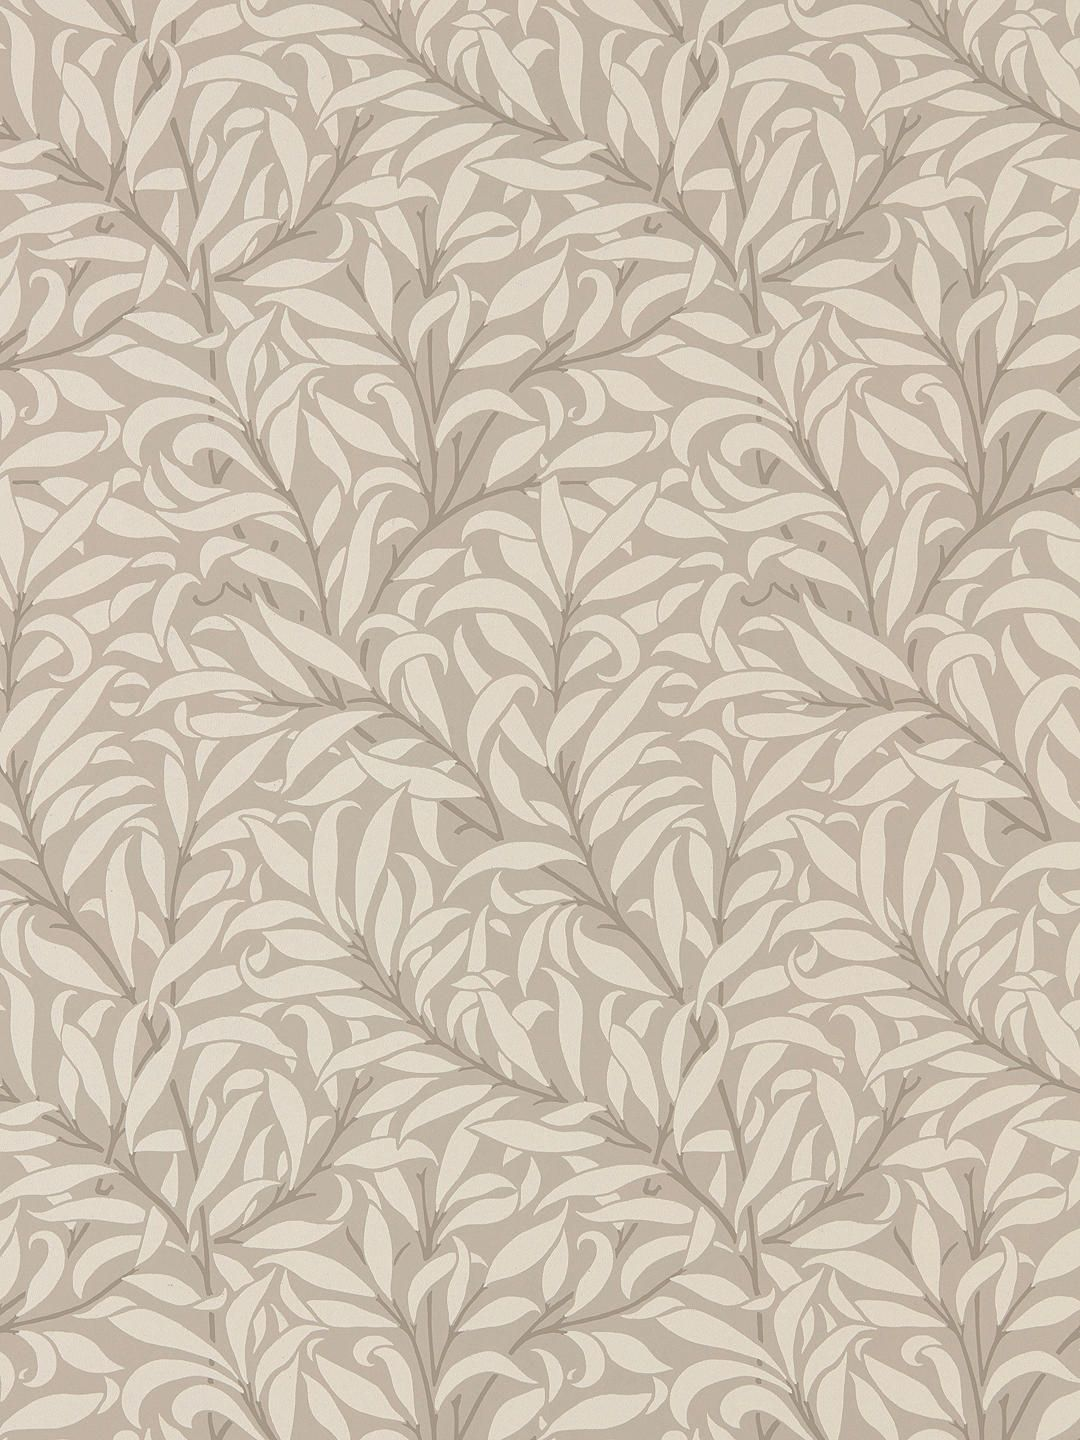 Morris & Co. Pure Willow Bough Wallpaper, Dove / Ivory